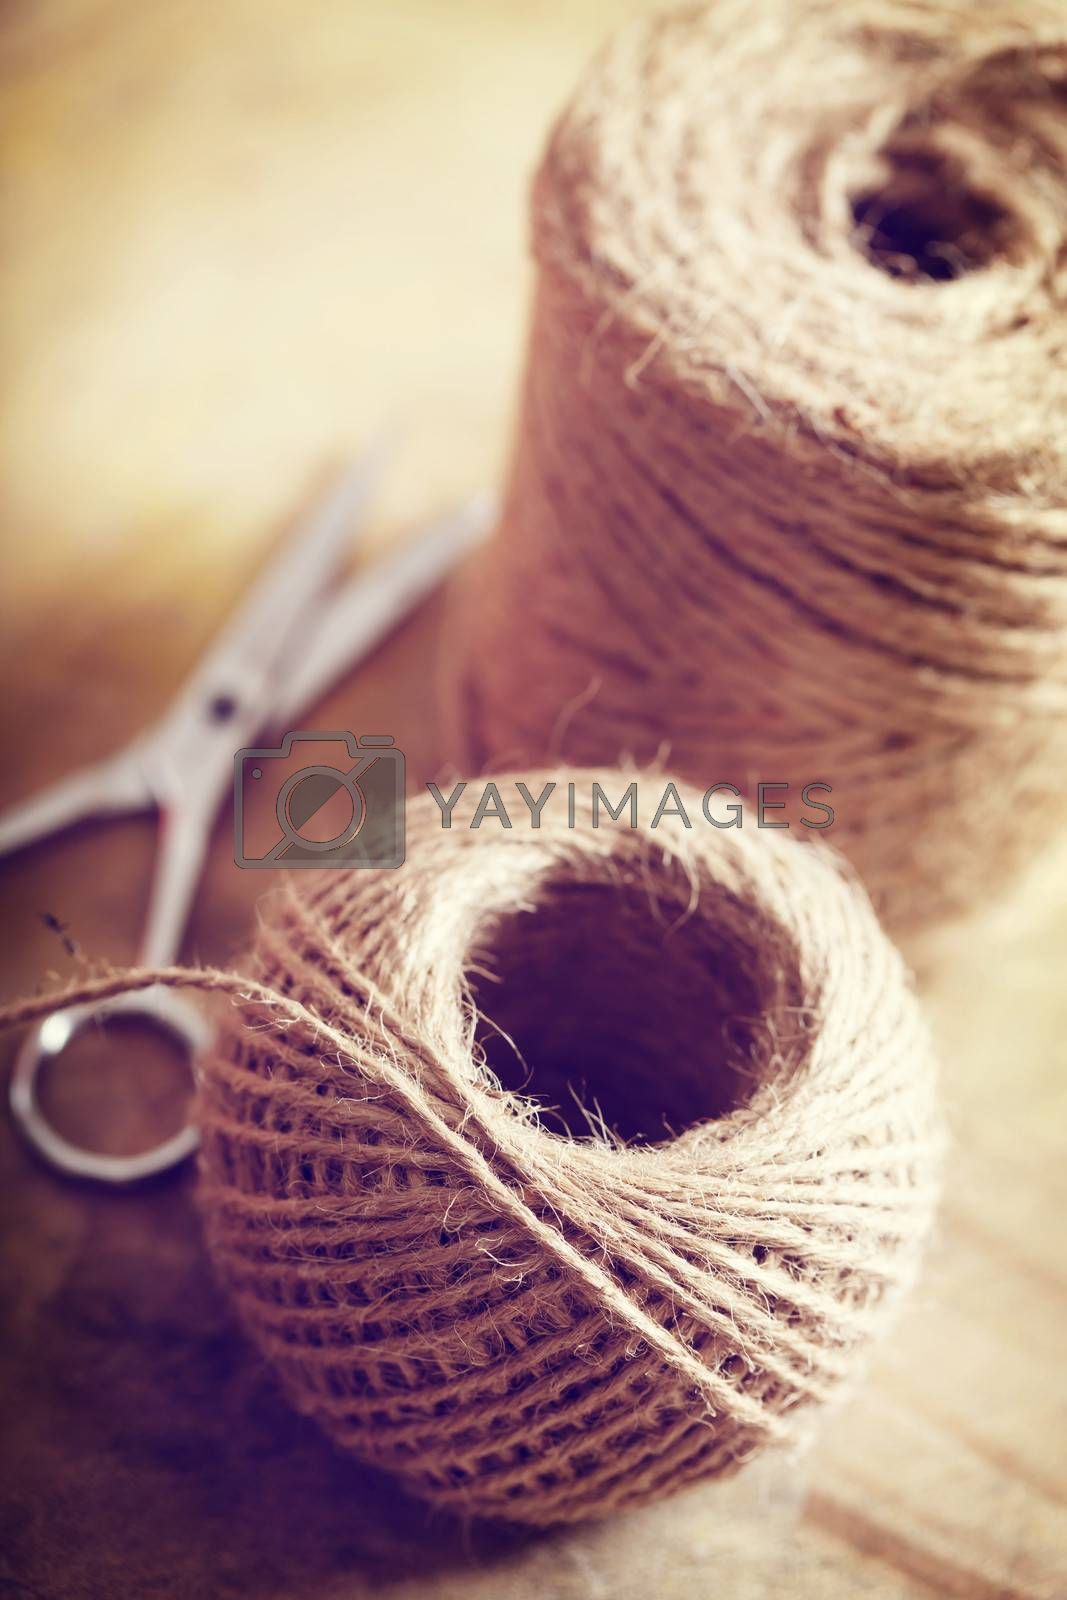 Royalty free image of Twine cord by melpomene